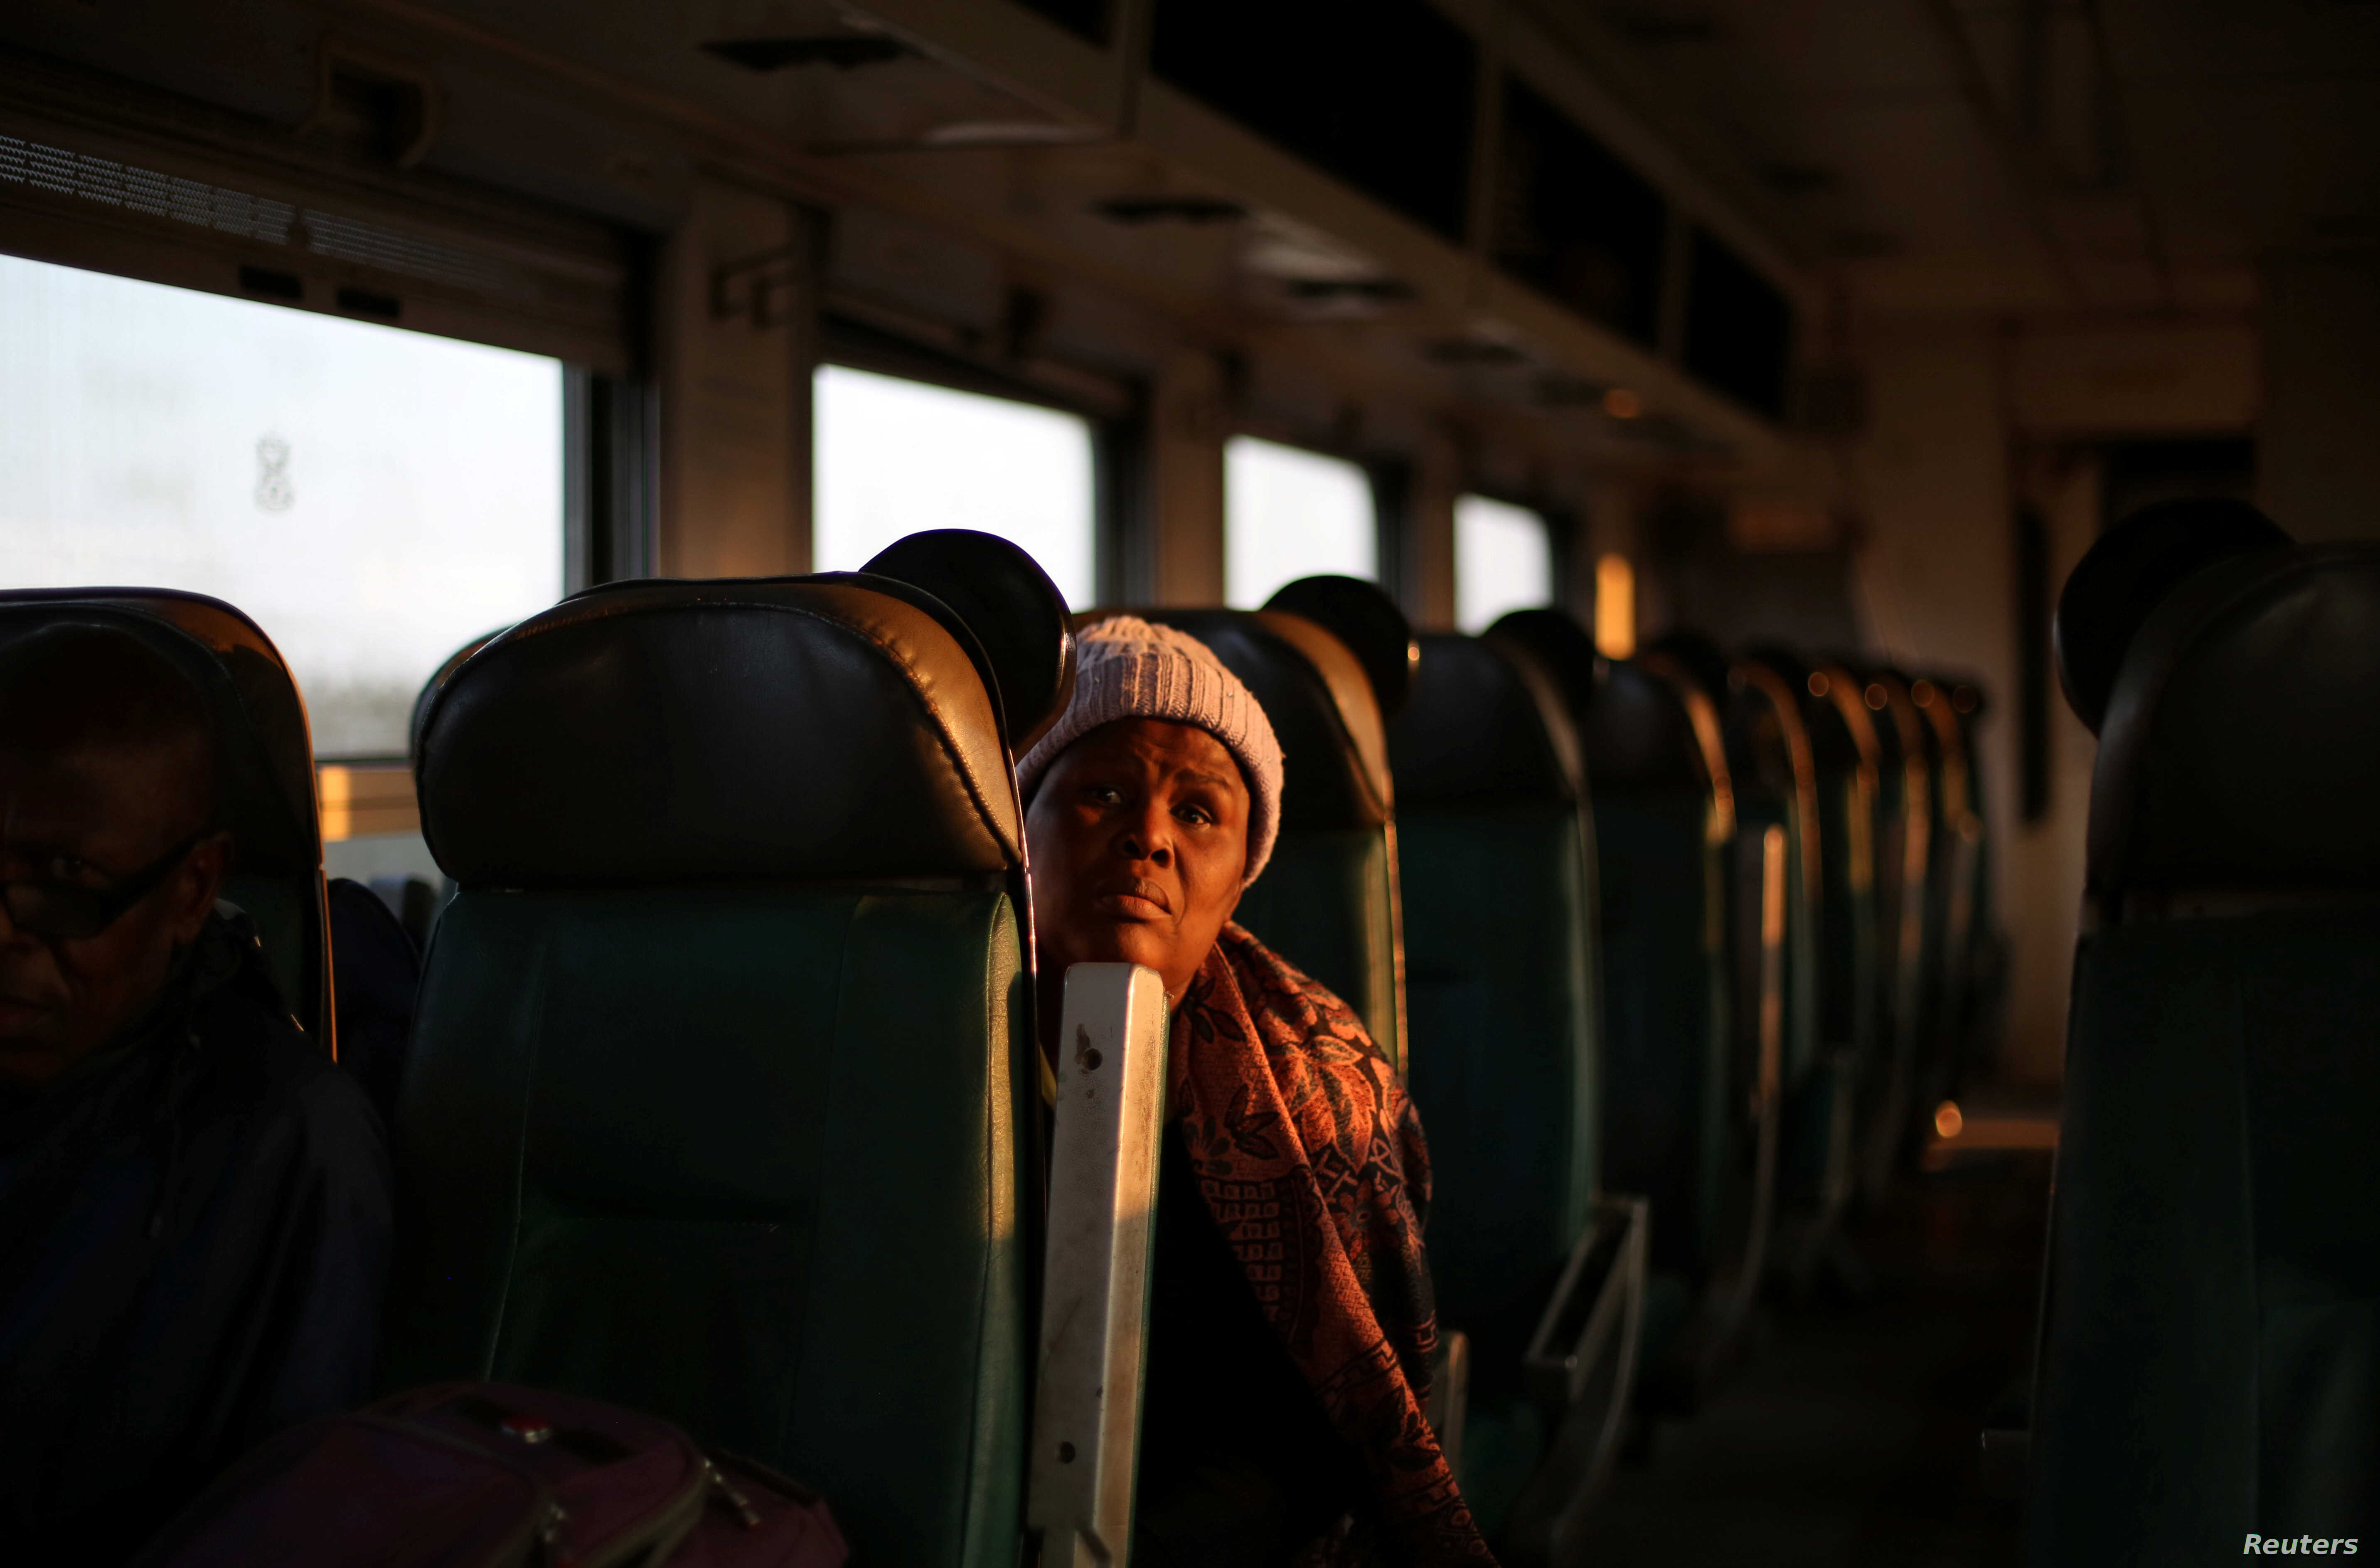 A passenger travels on a sleeper train from Harare to Bulawayo, Zimbabwe, Aug. 6, 2018.